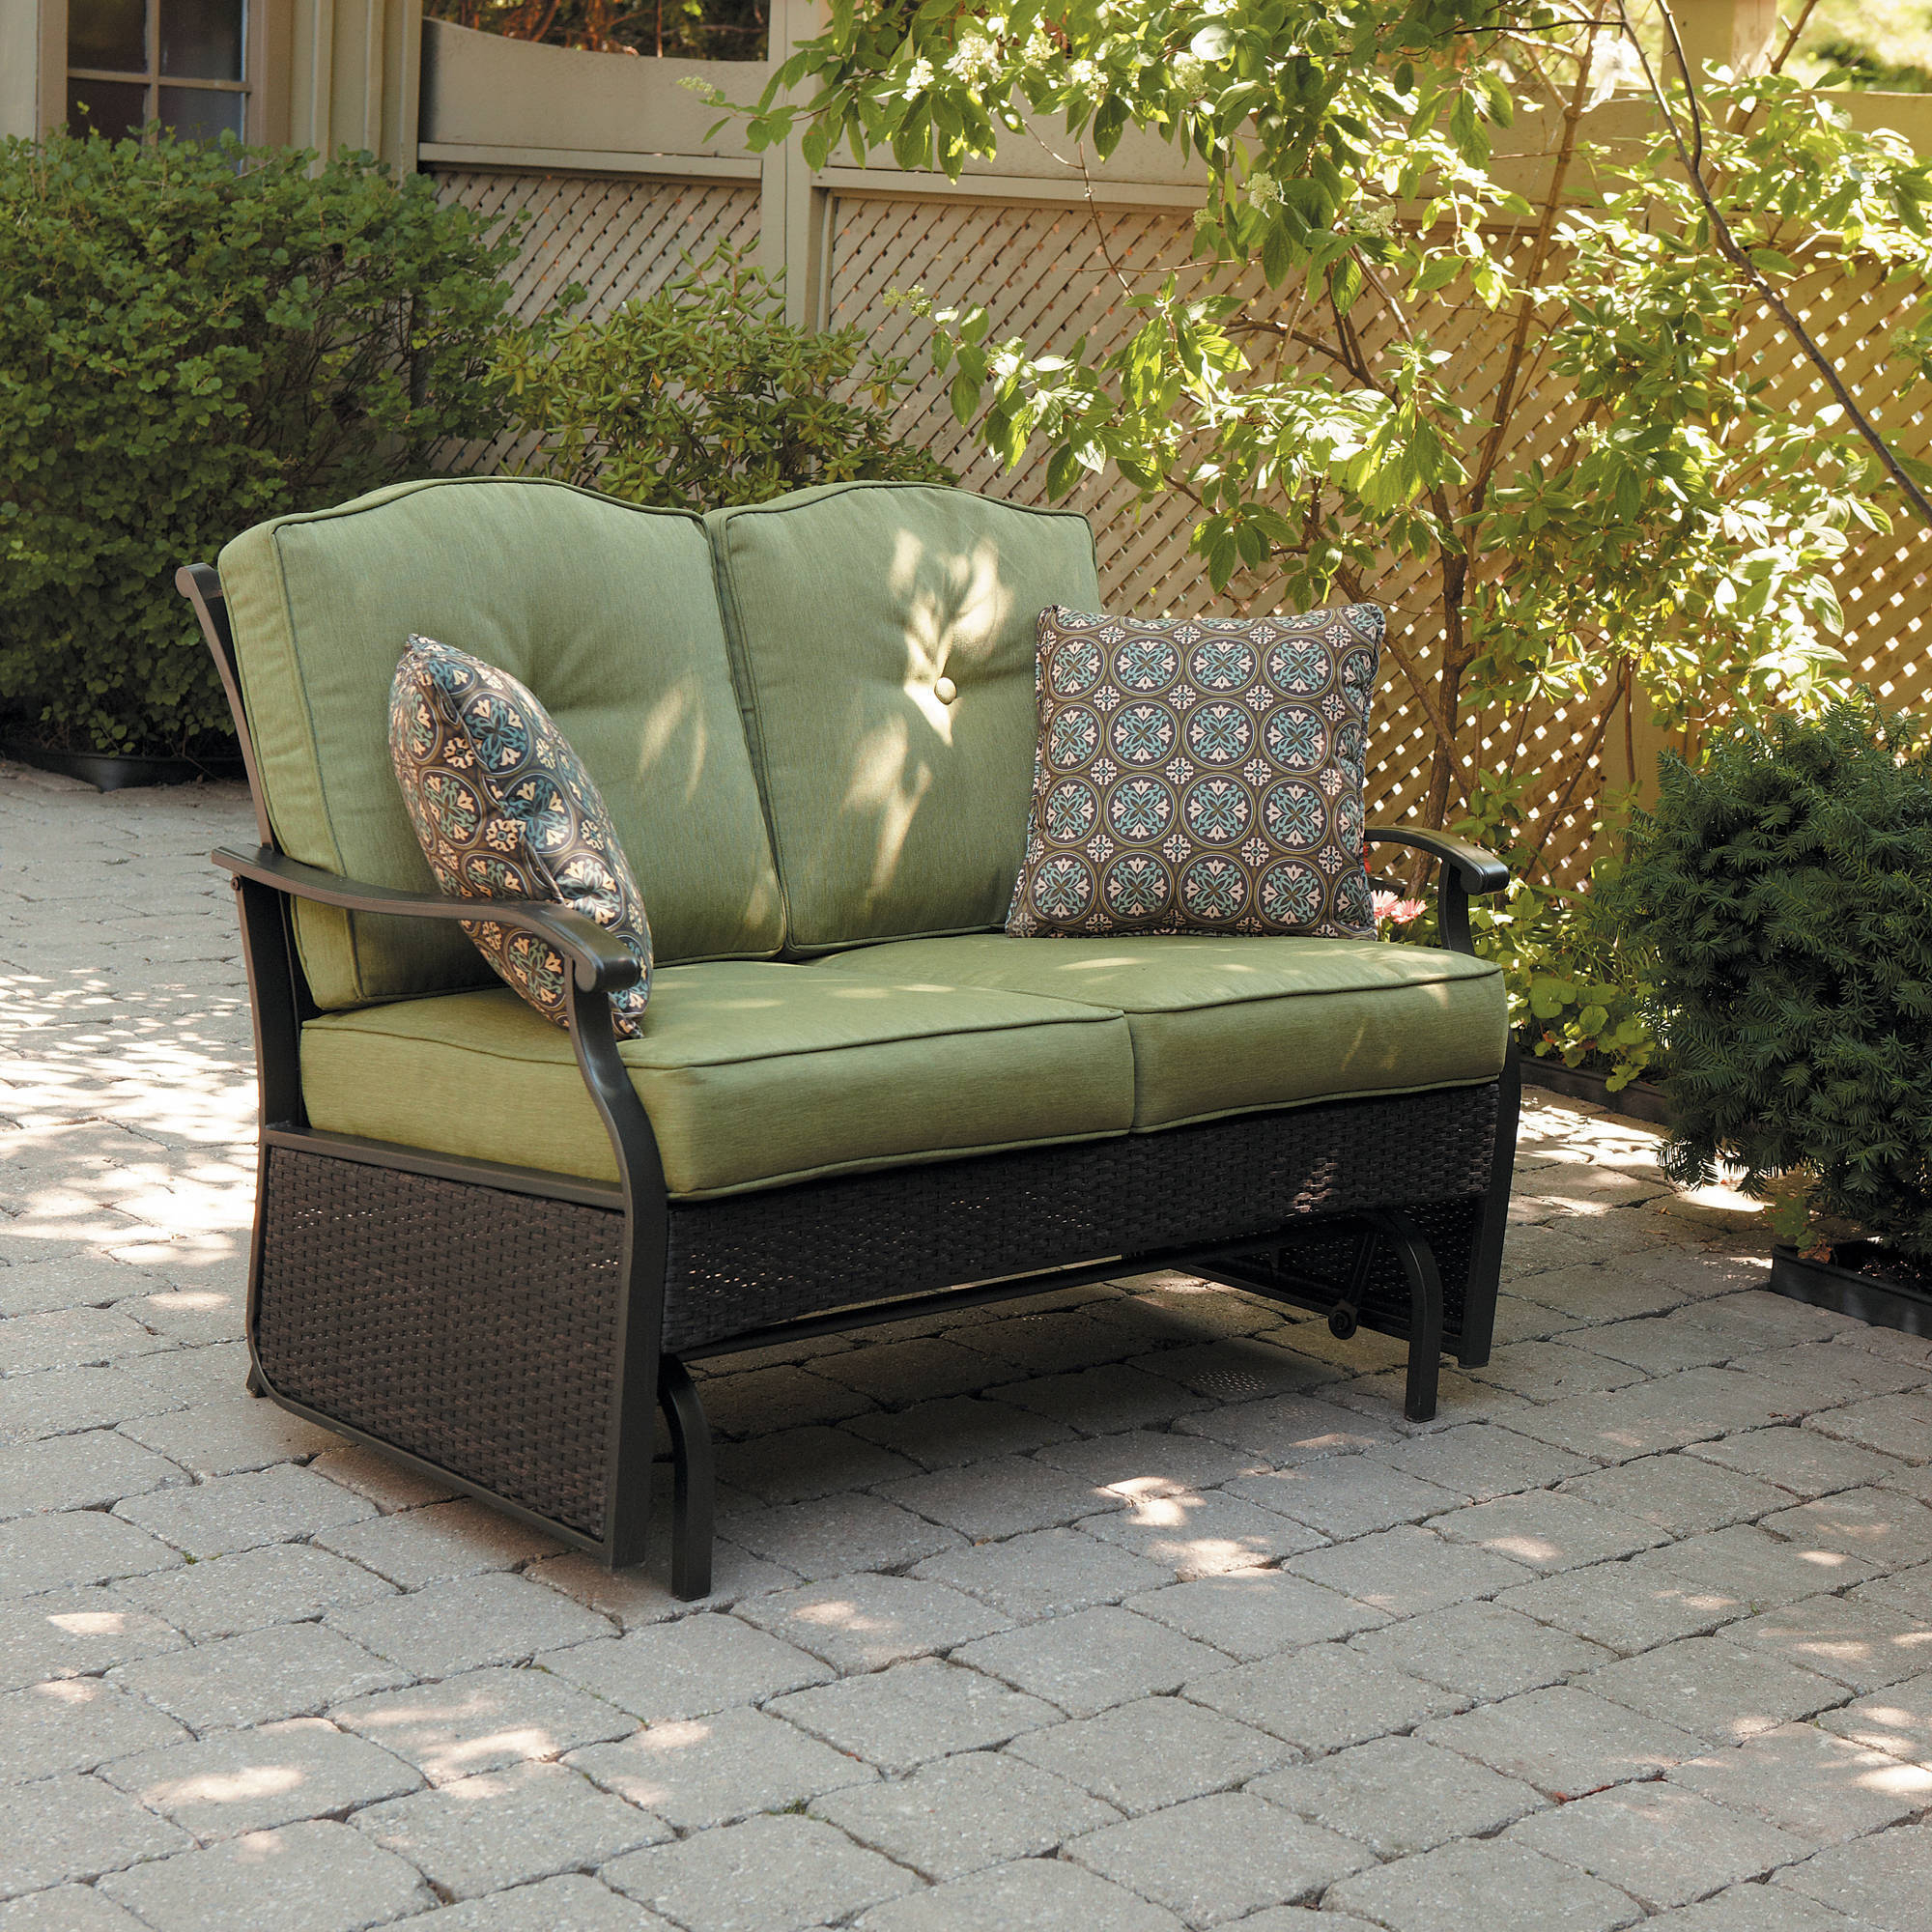 Most Current Better Homes & Gardens Providence 2 Person Outdoor Glider Loveseat – Walmart With Regard To Outdoor Patio Swing Glider Bench Chair S (Gallery 13 of 25)